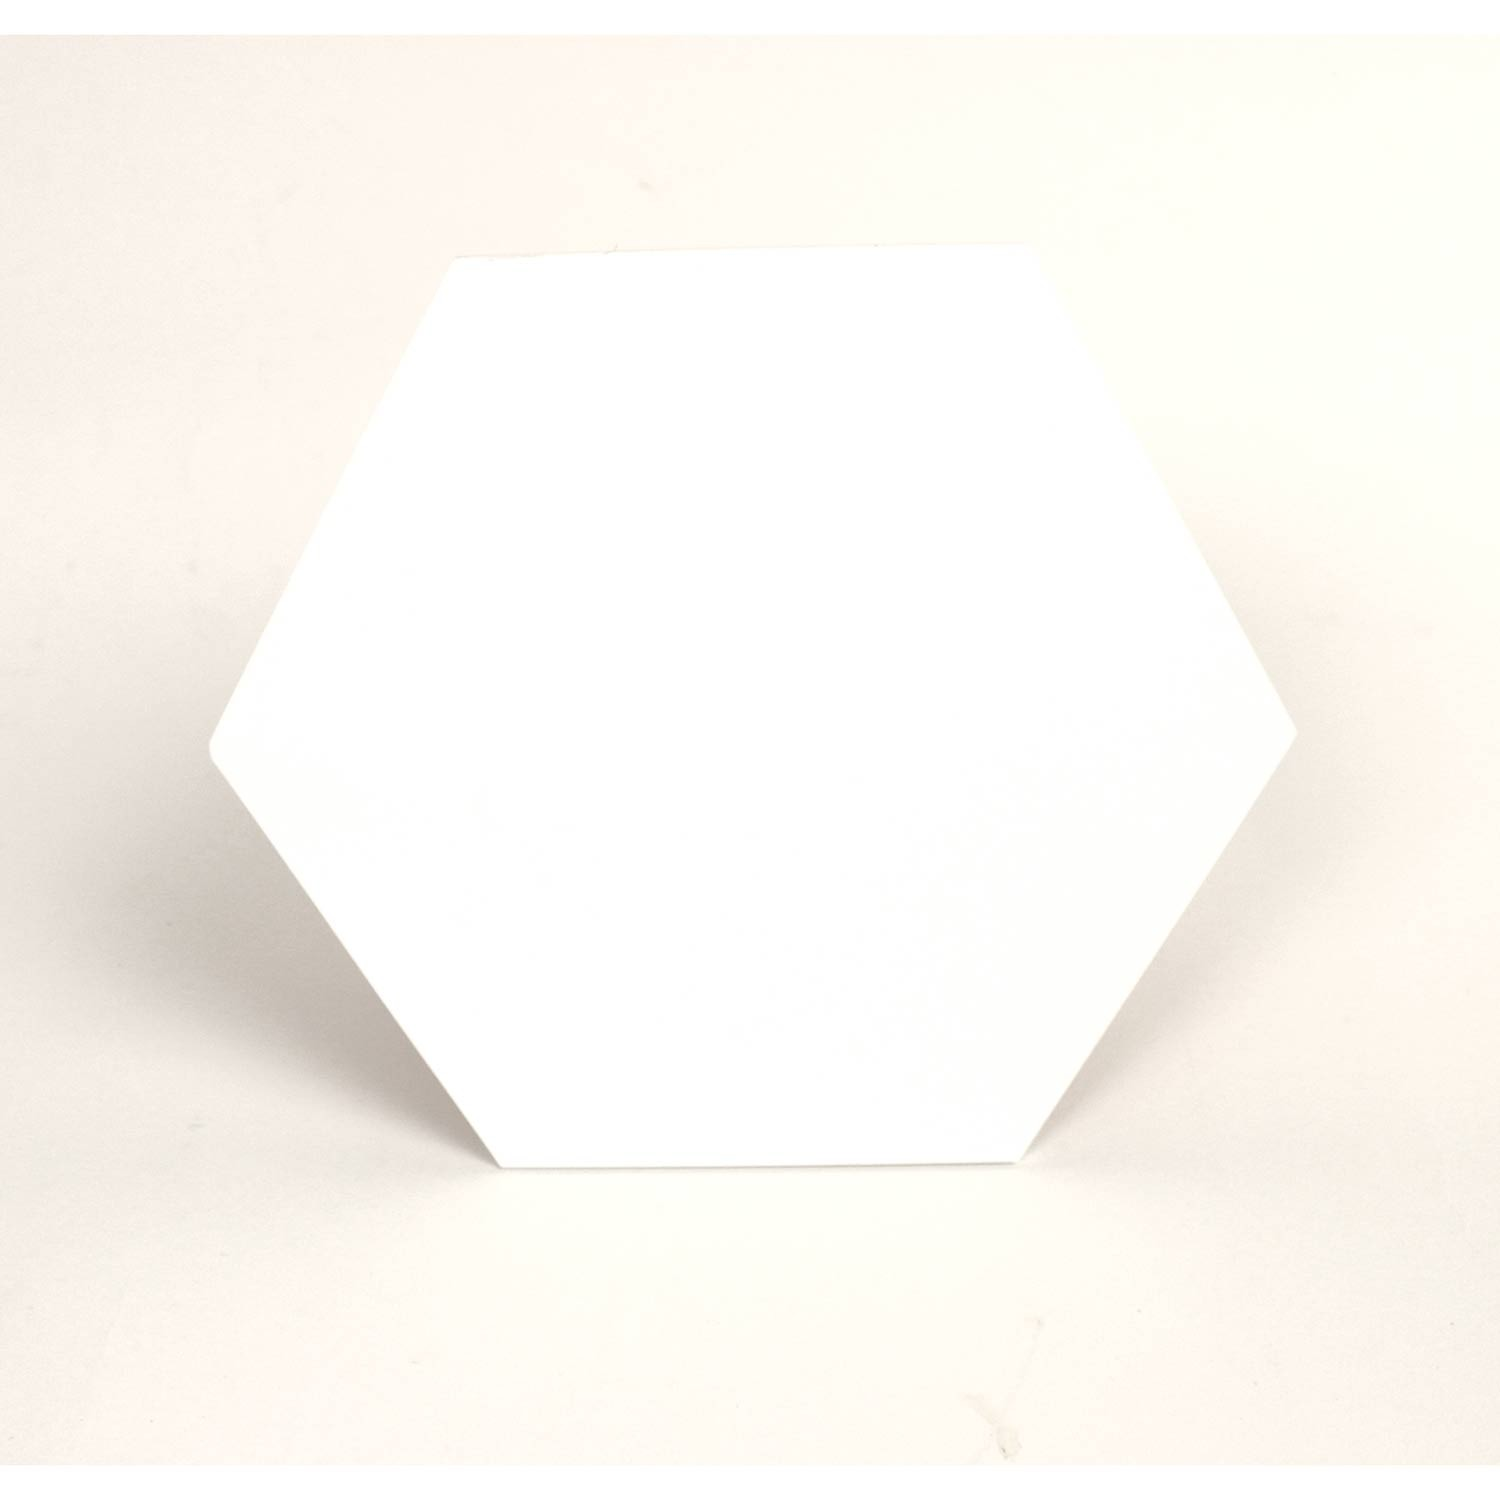 Replacement Paper Pad for 5-folds, 10 sheets